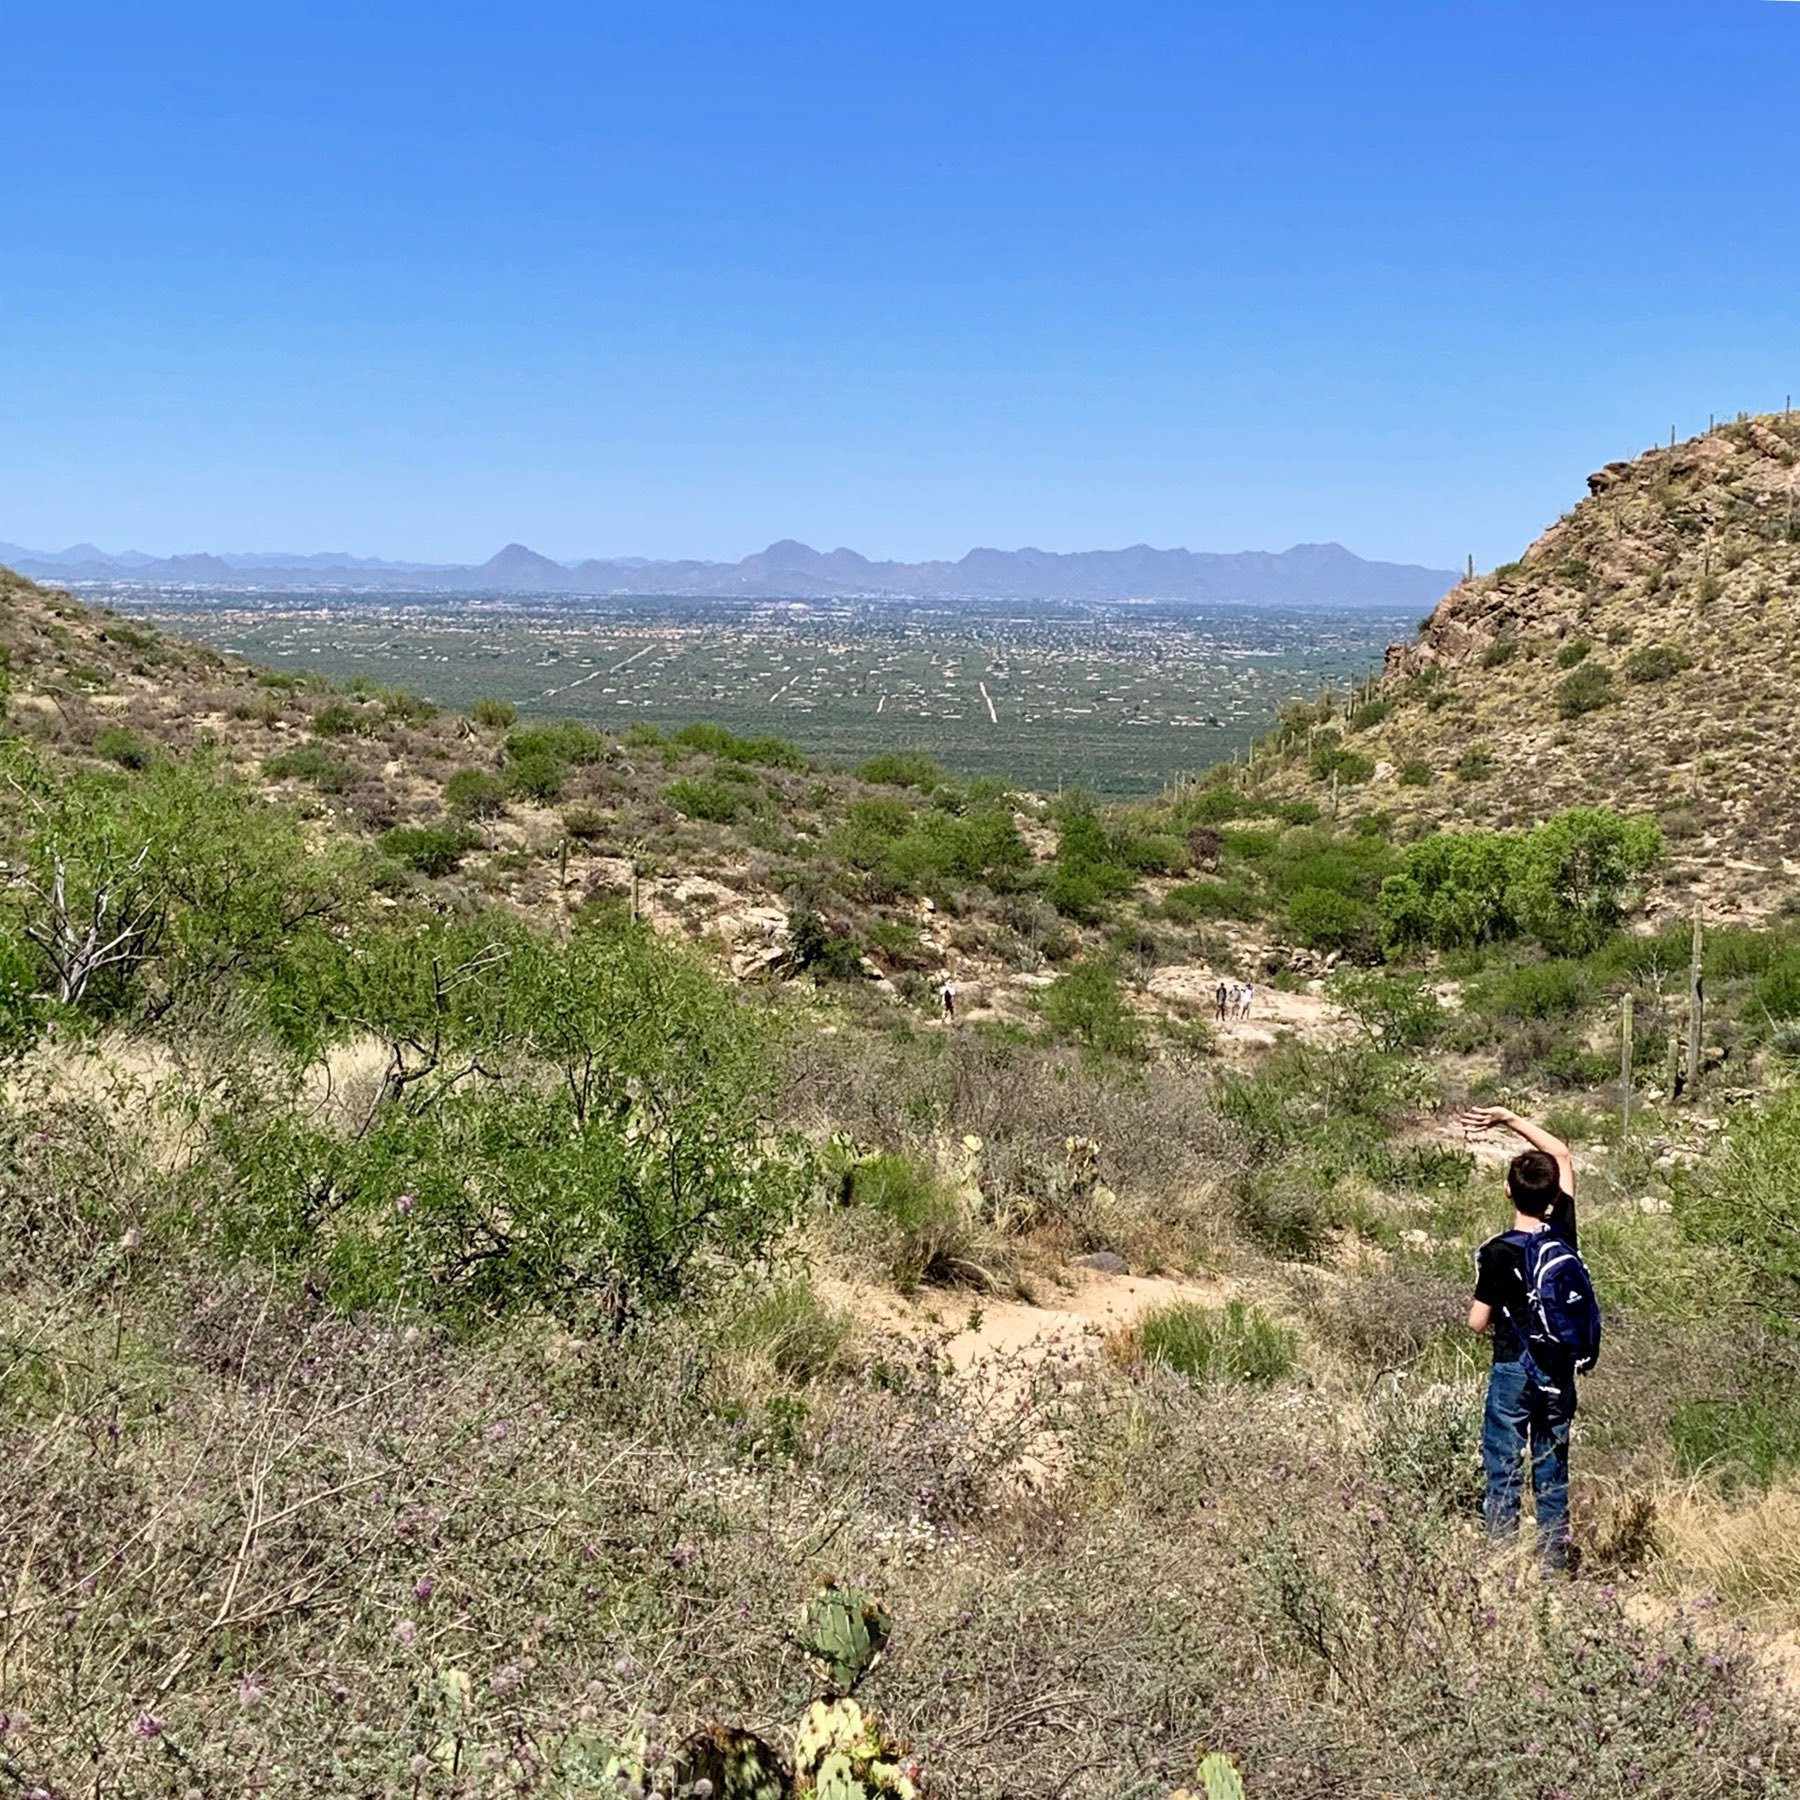 a view of Tucson looking from the mountains in the east